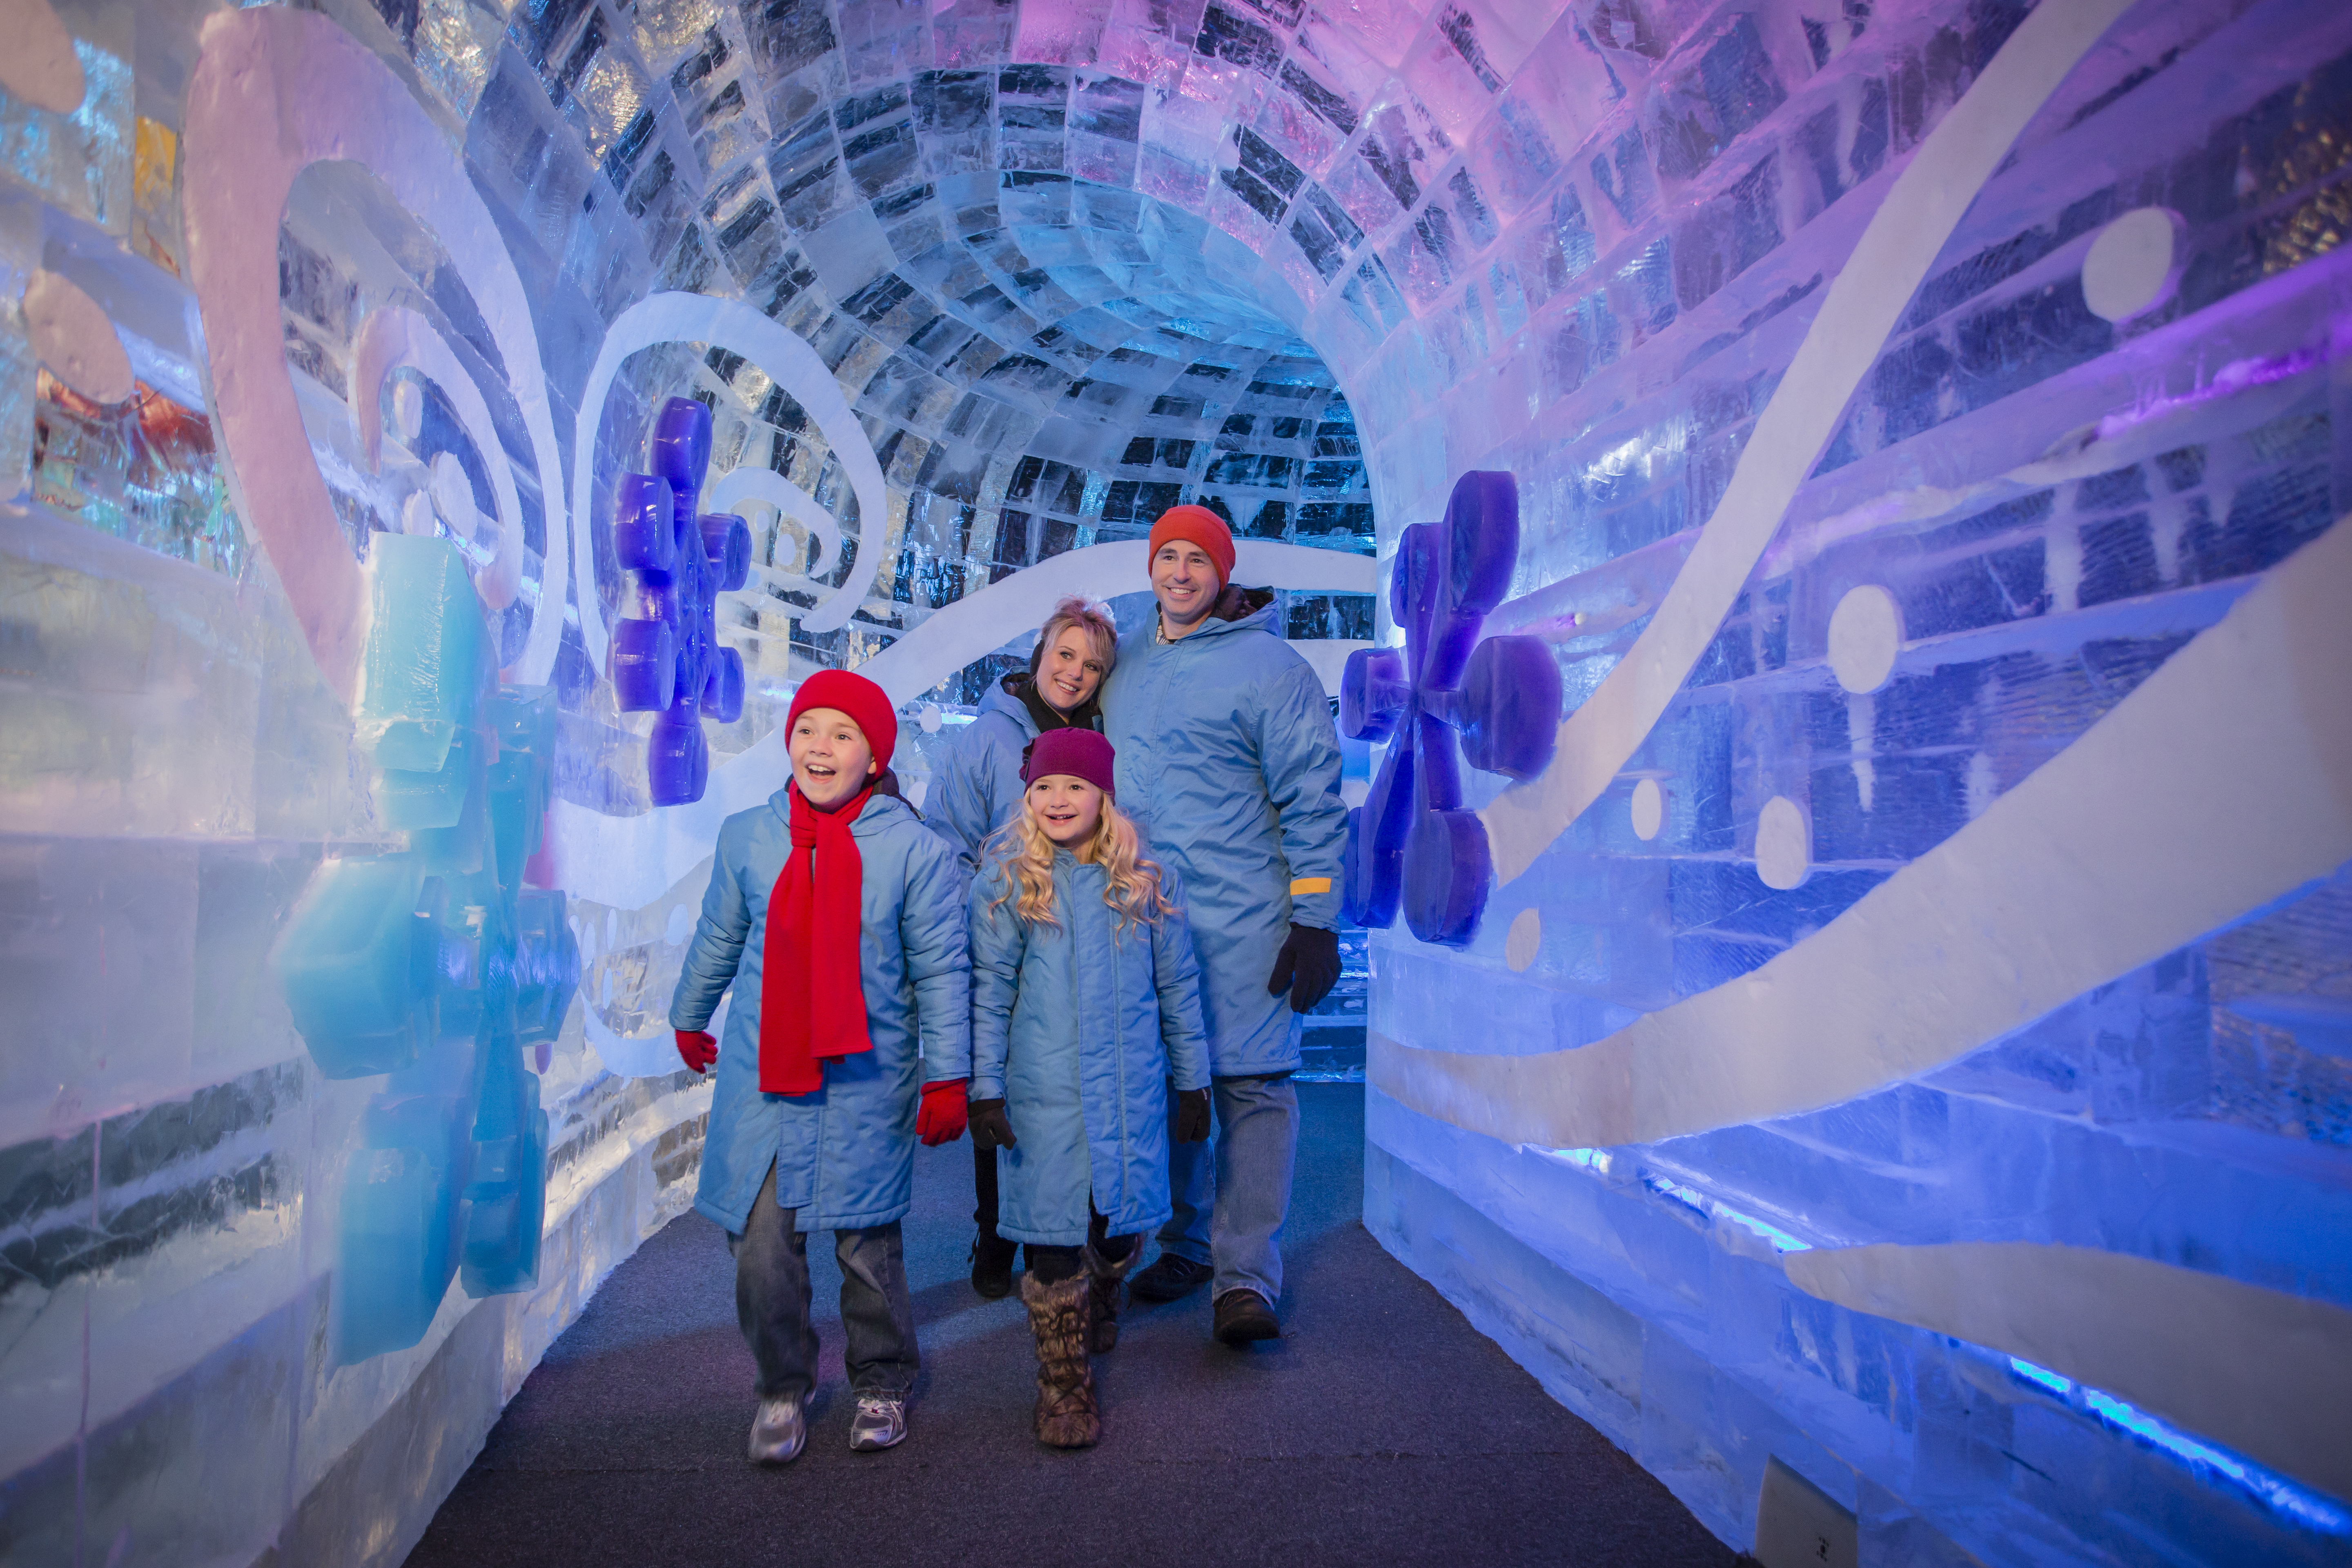 Photo Release Artisans Sculpt 8 Million Pounds Of Colorful Ice At Gaylord Hotels Nasdaq Mar